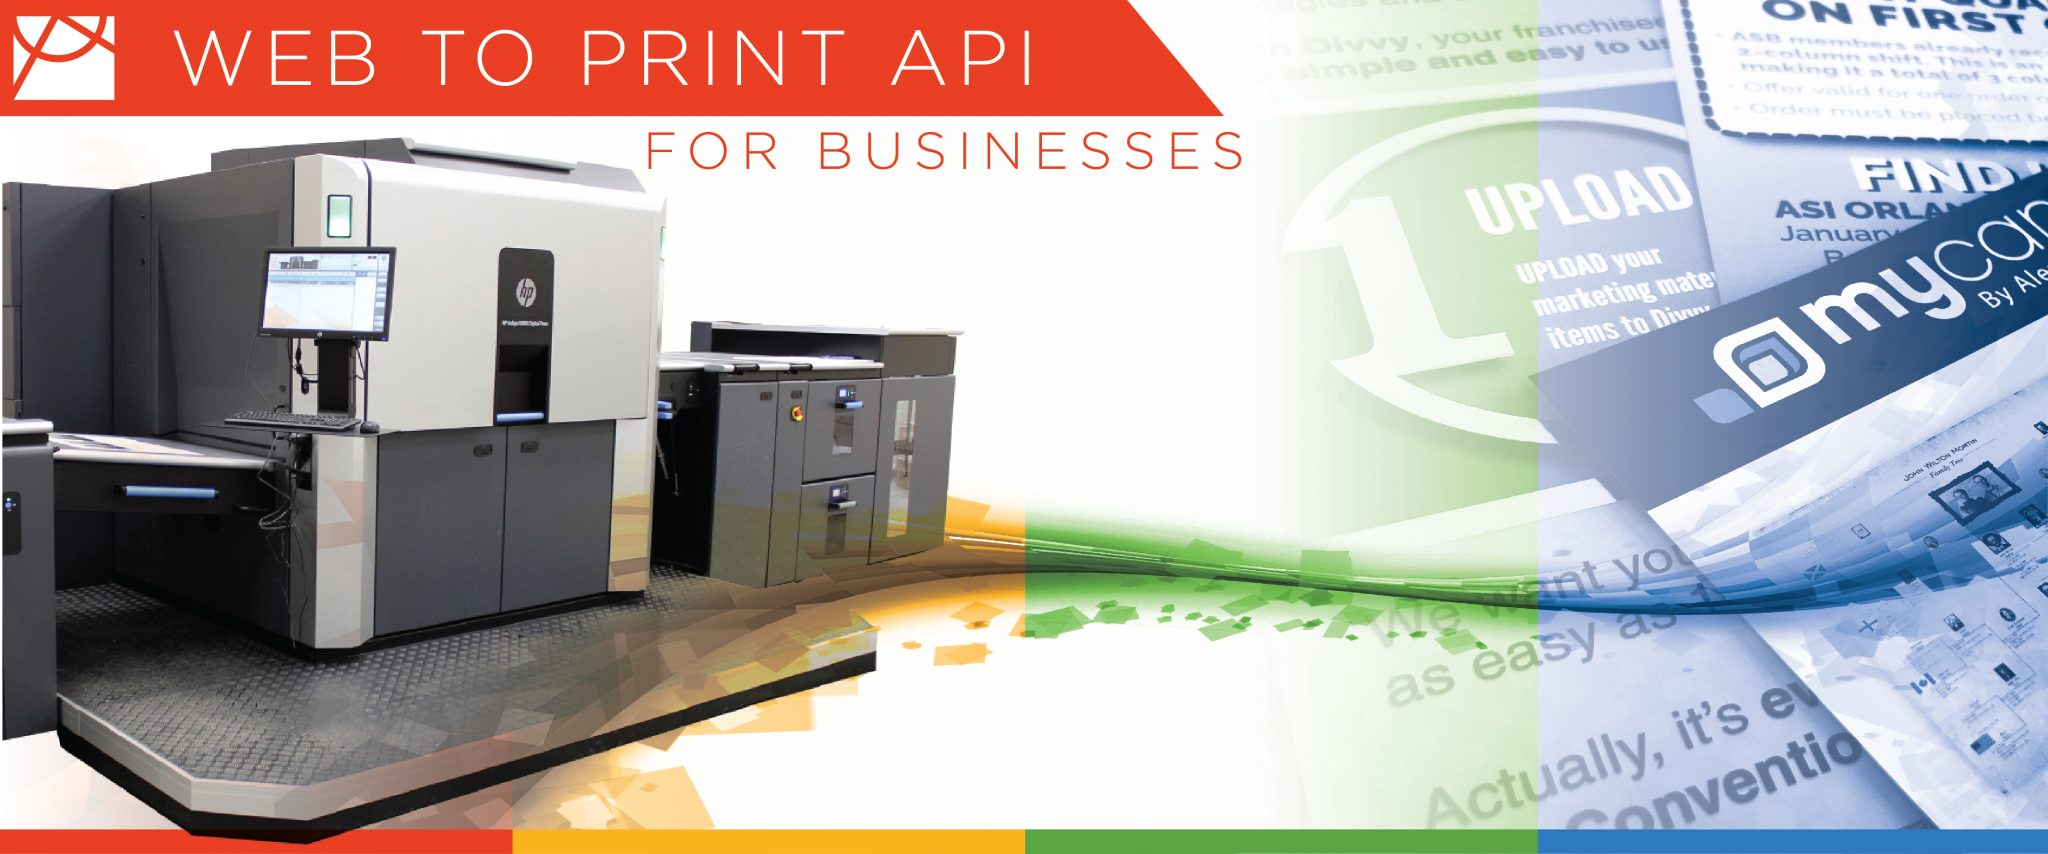 <h1>Web To Print API For Business</h1><p>Our Web to Print API For Business platforms offer many innovative and modern solutions for any type of business or group, whether large, small, or even franchises!</p>